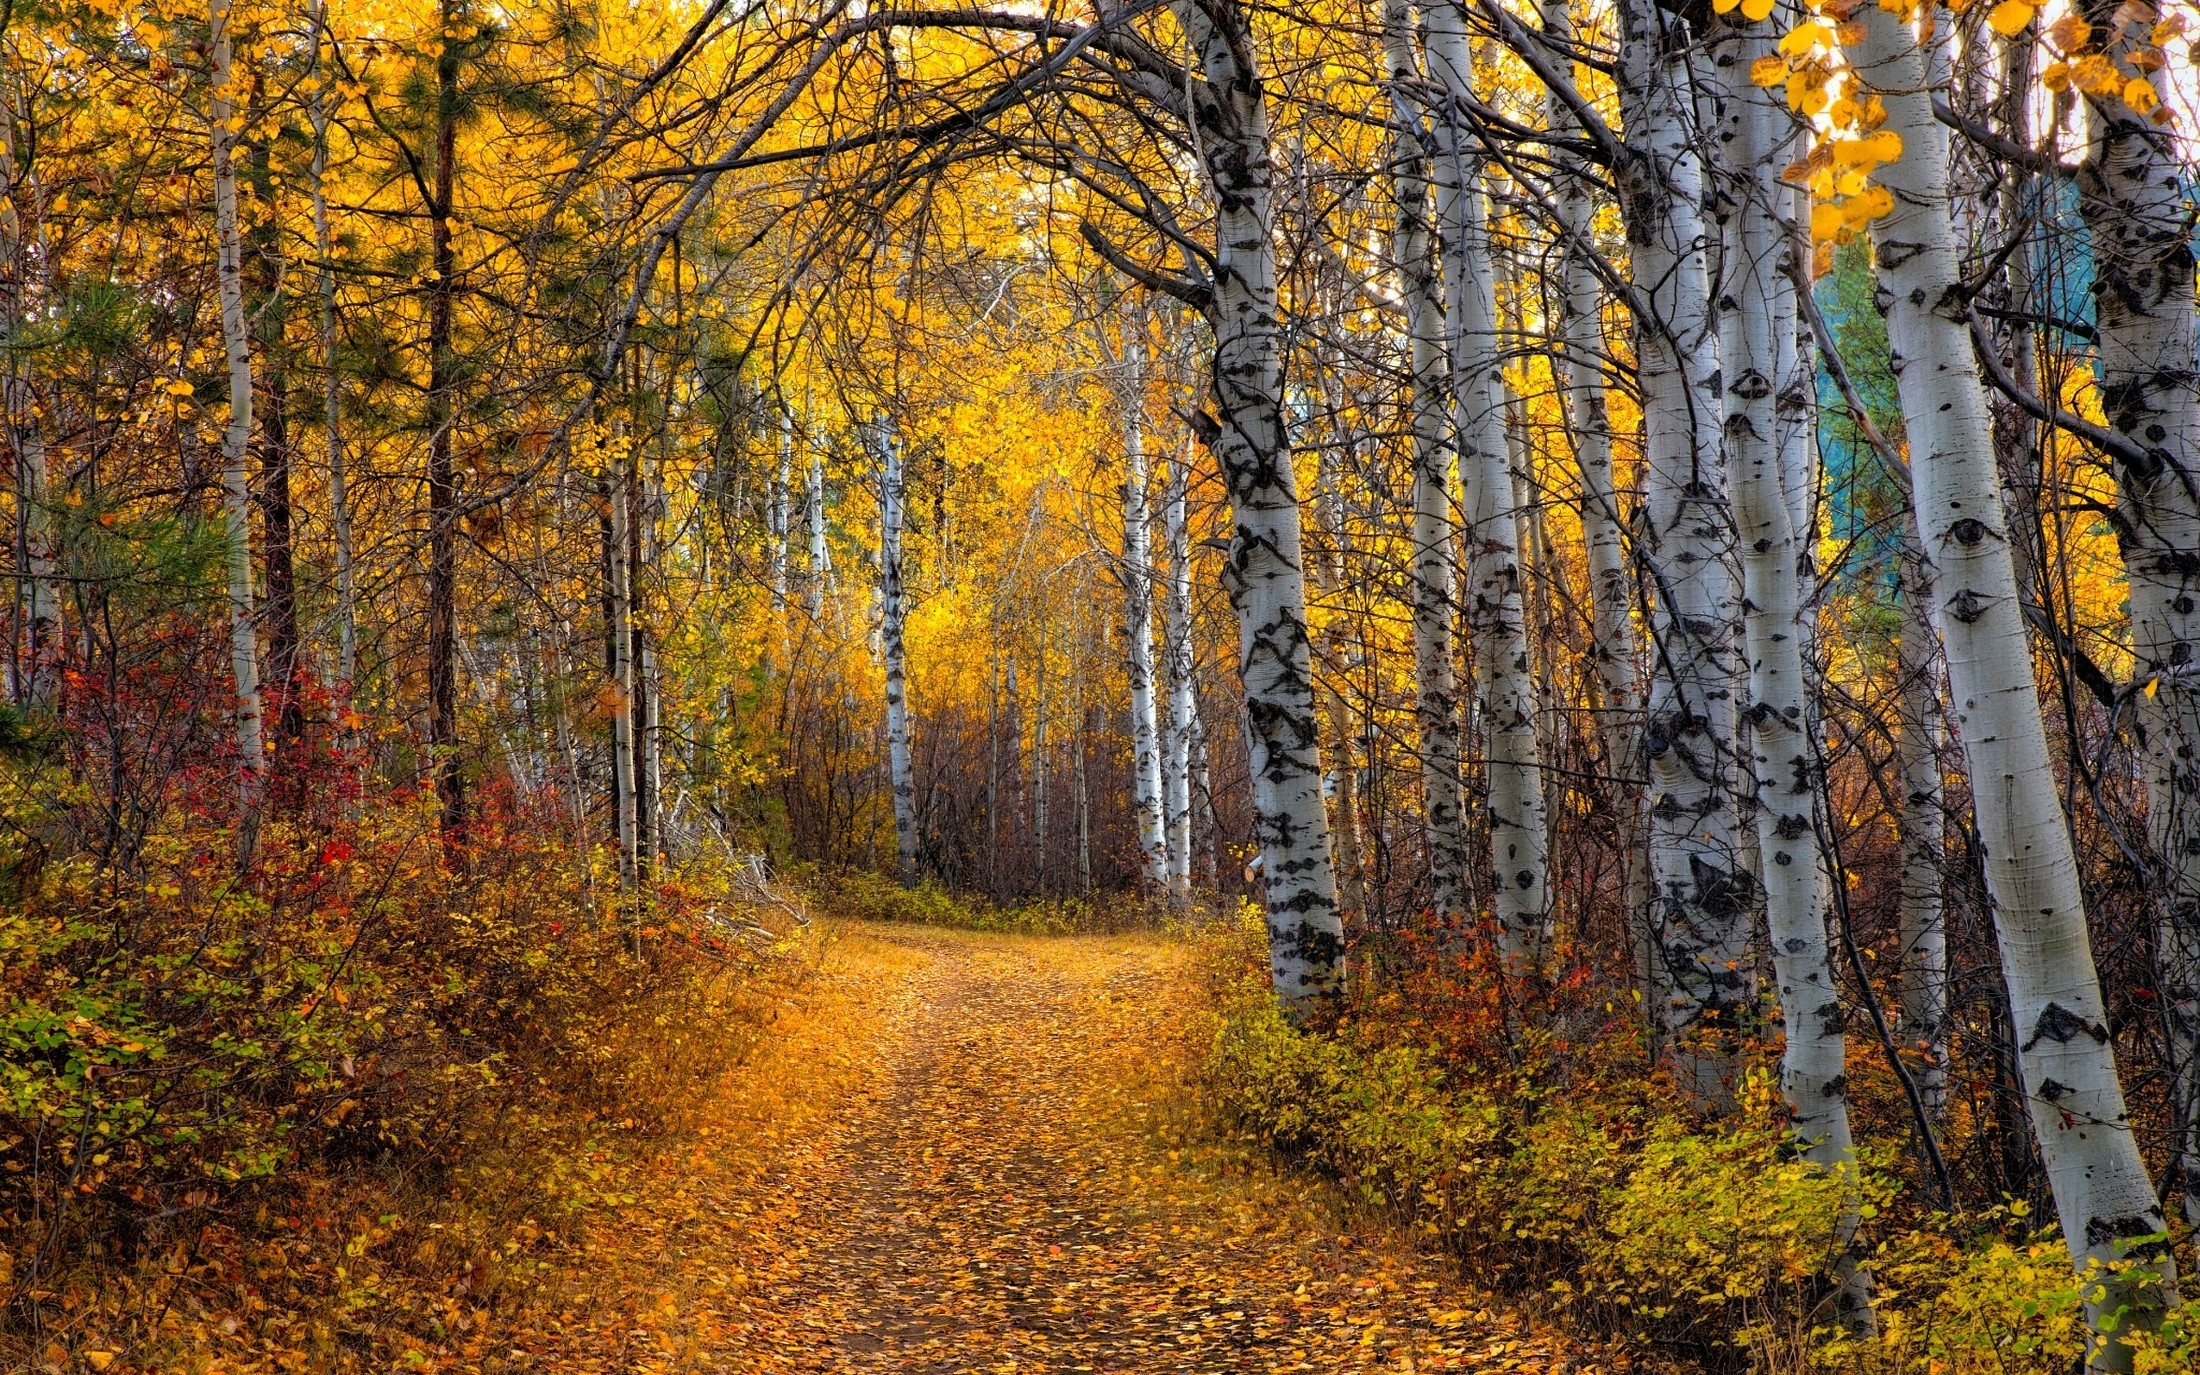 2200x1375 nature, Landscape, Aspen, Trees, Leaves, Yellow, Path, Shrubs, Forest, Dirt  Road Wallpapers HD / Desktop and Mobile Backgrounds